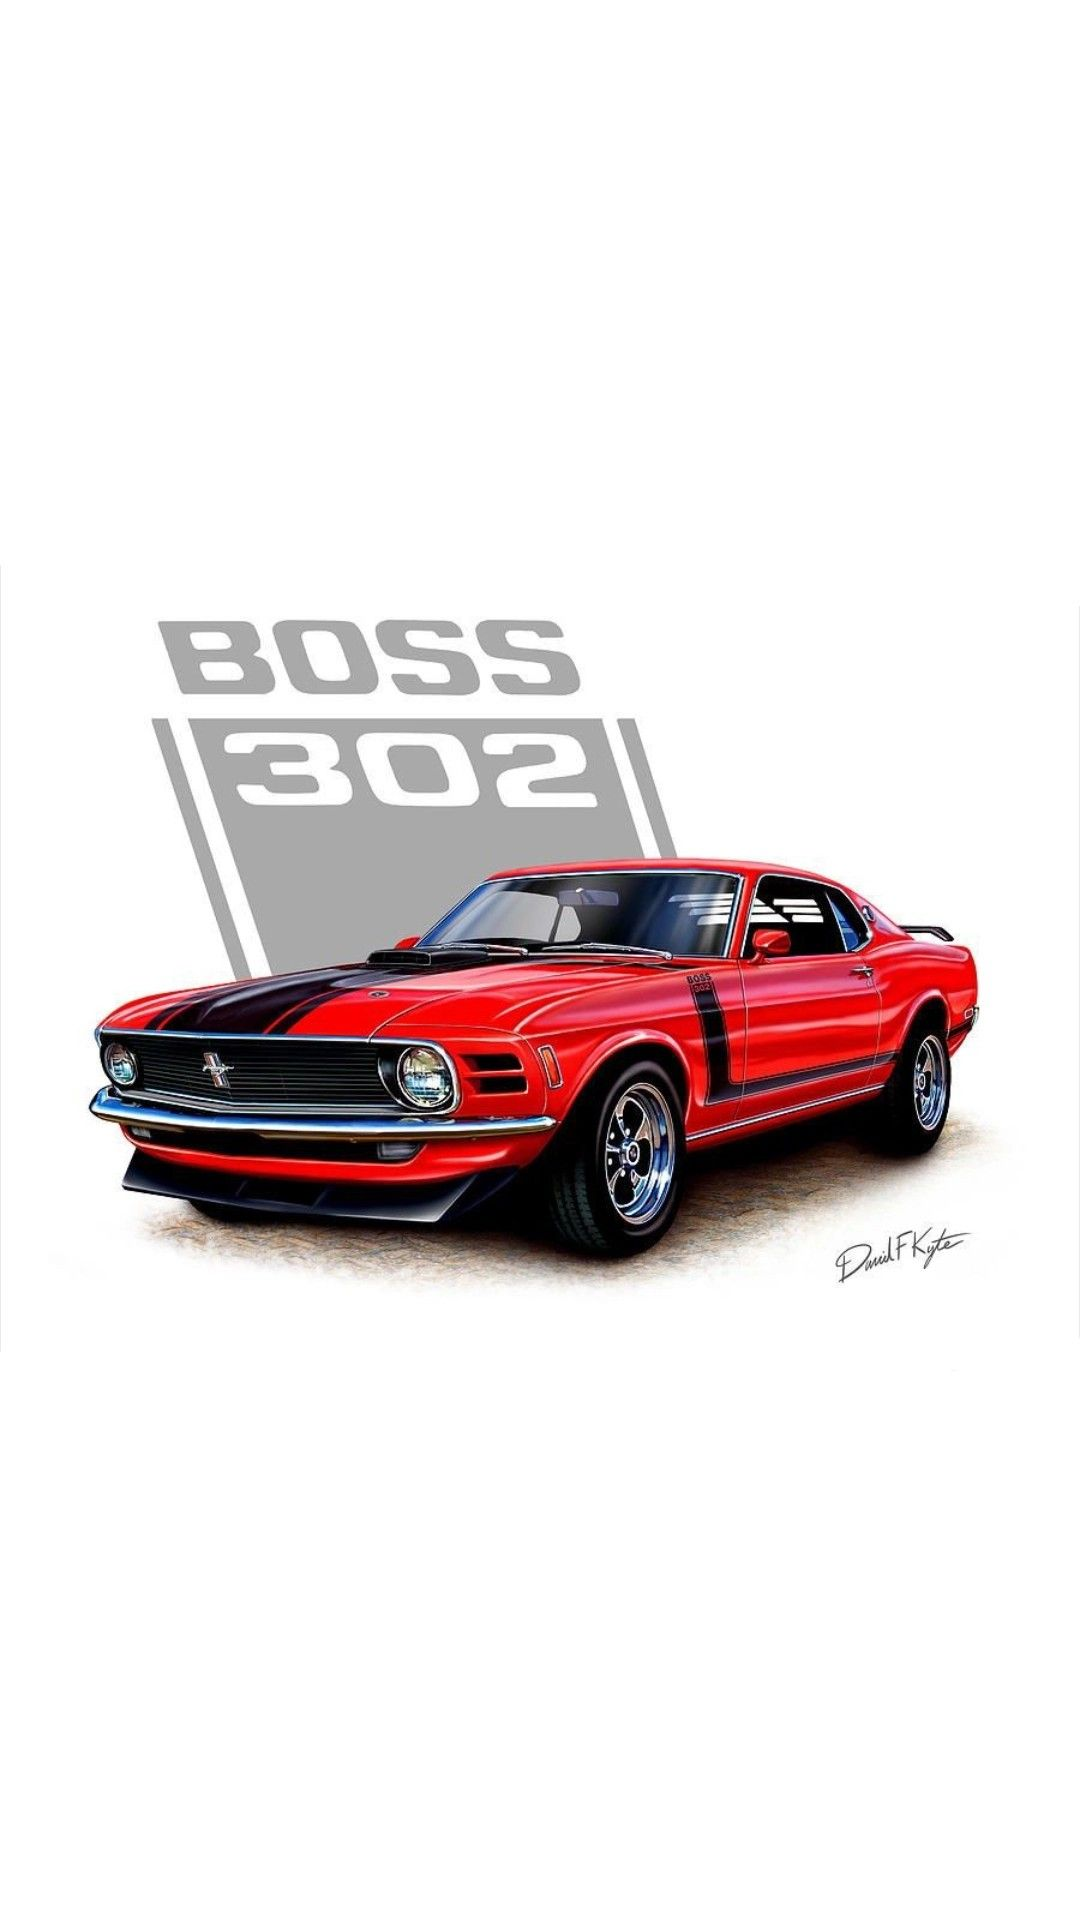 Ford Mustang Boss 302 Car Wallpapers Cars Vintage Cars